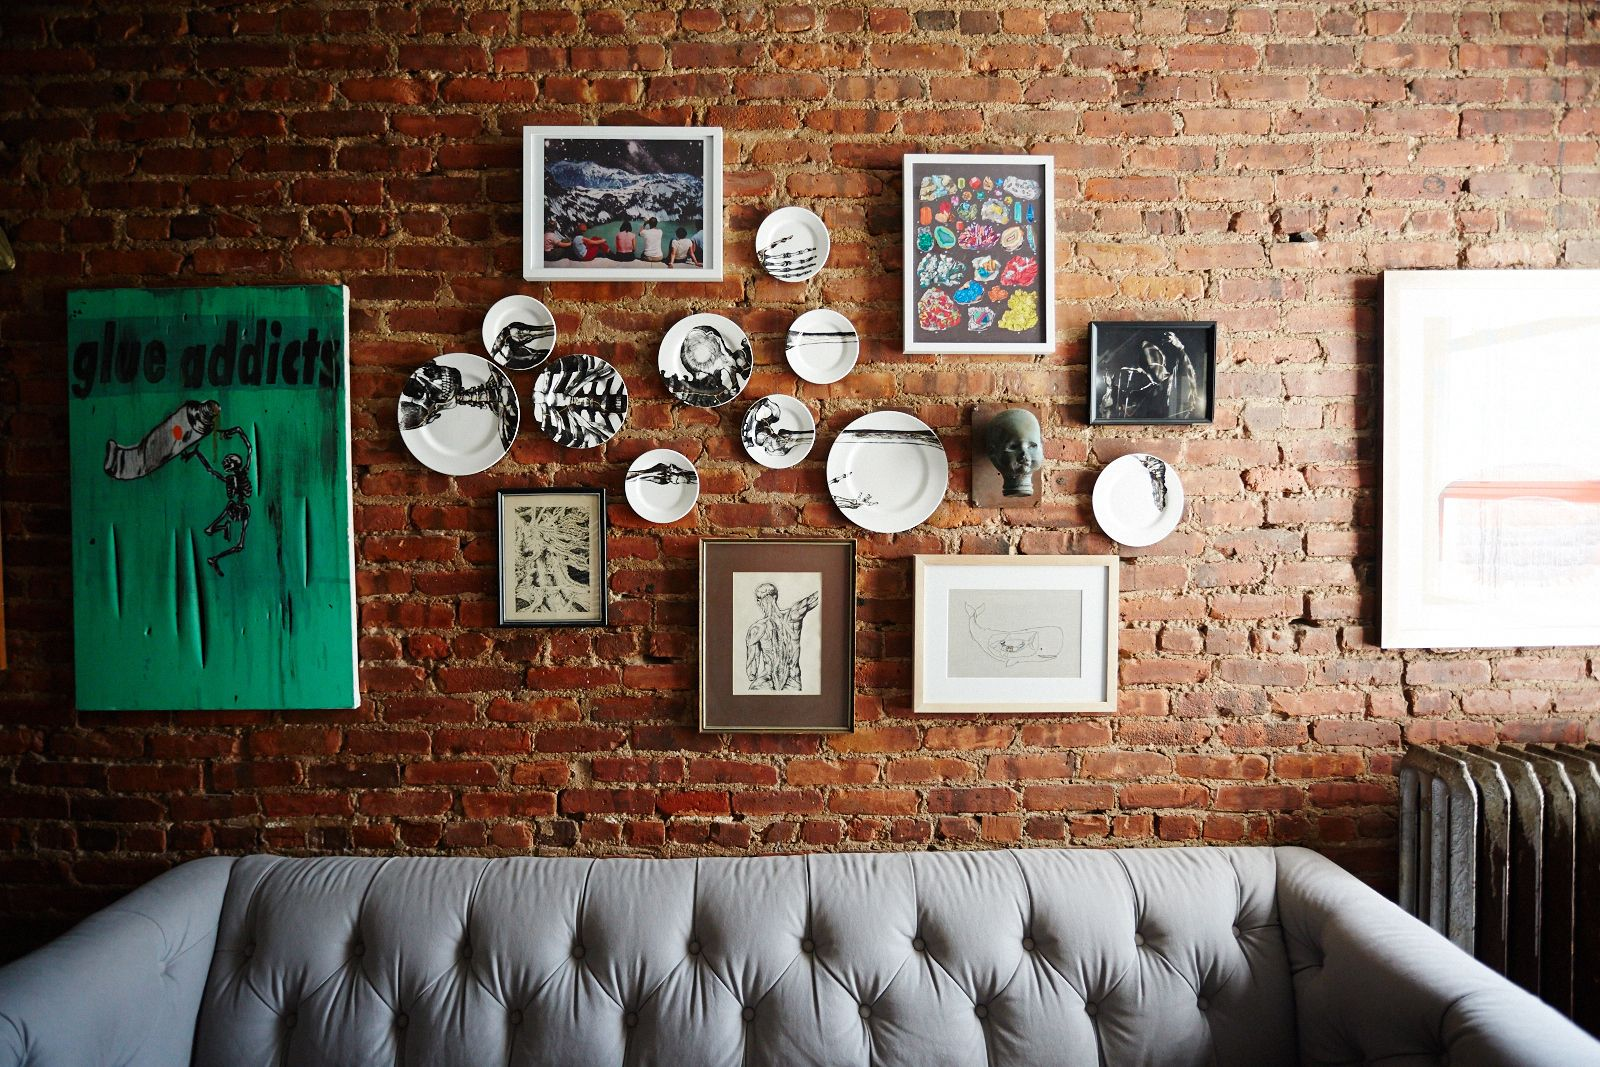 Decoration ideas for small spaces living awesome style and ties